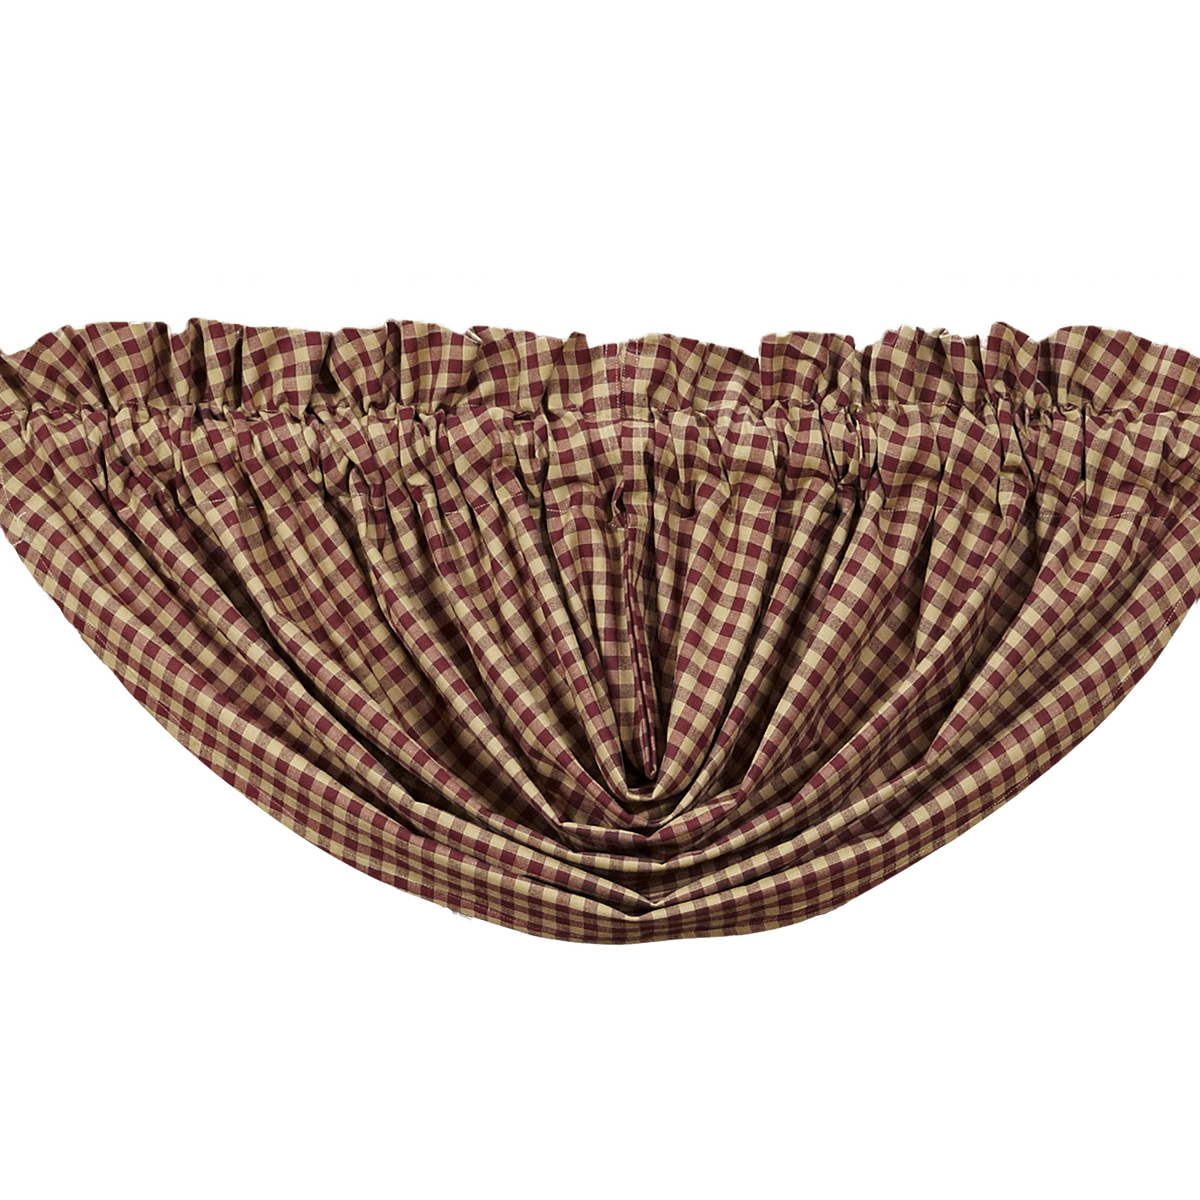 BURGUNDY CHECK Balloon Valance Lined - 60x15 - Country Burgundy/Tan - VHC Brands